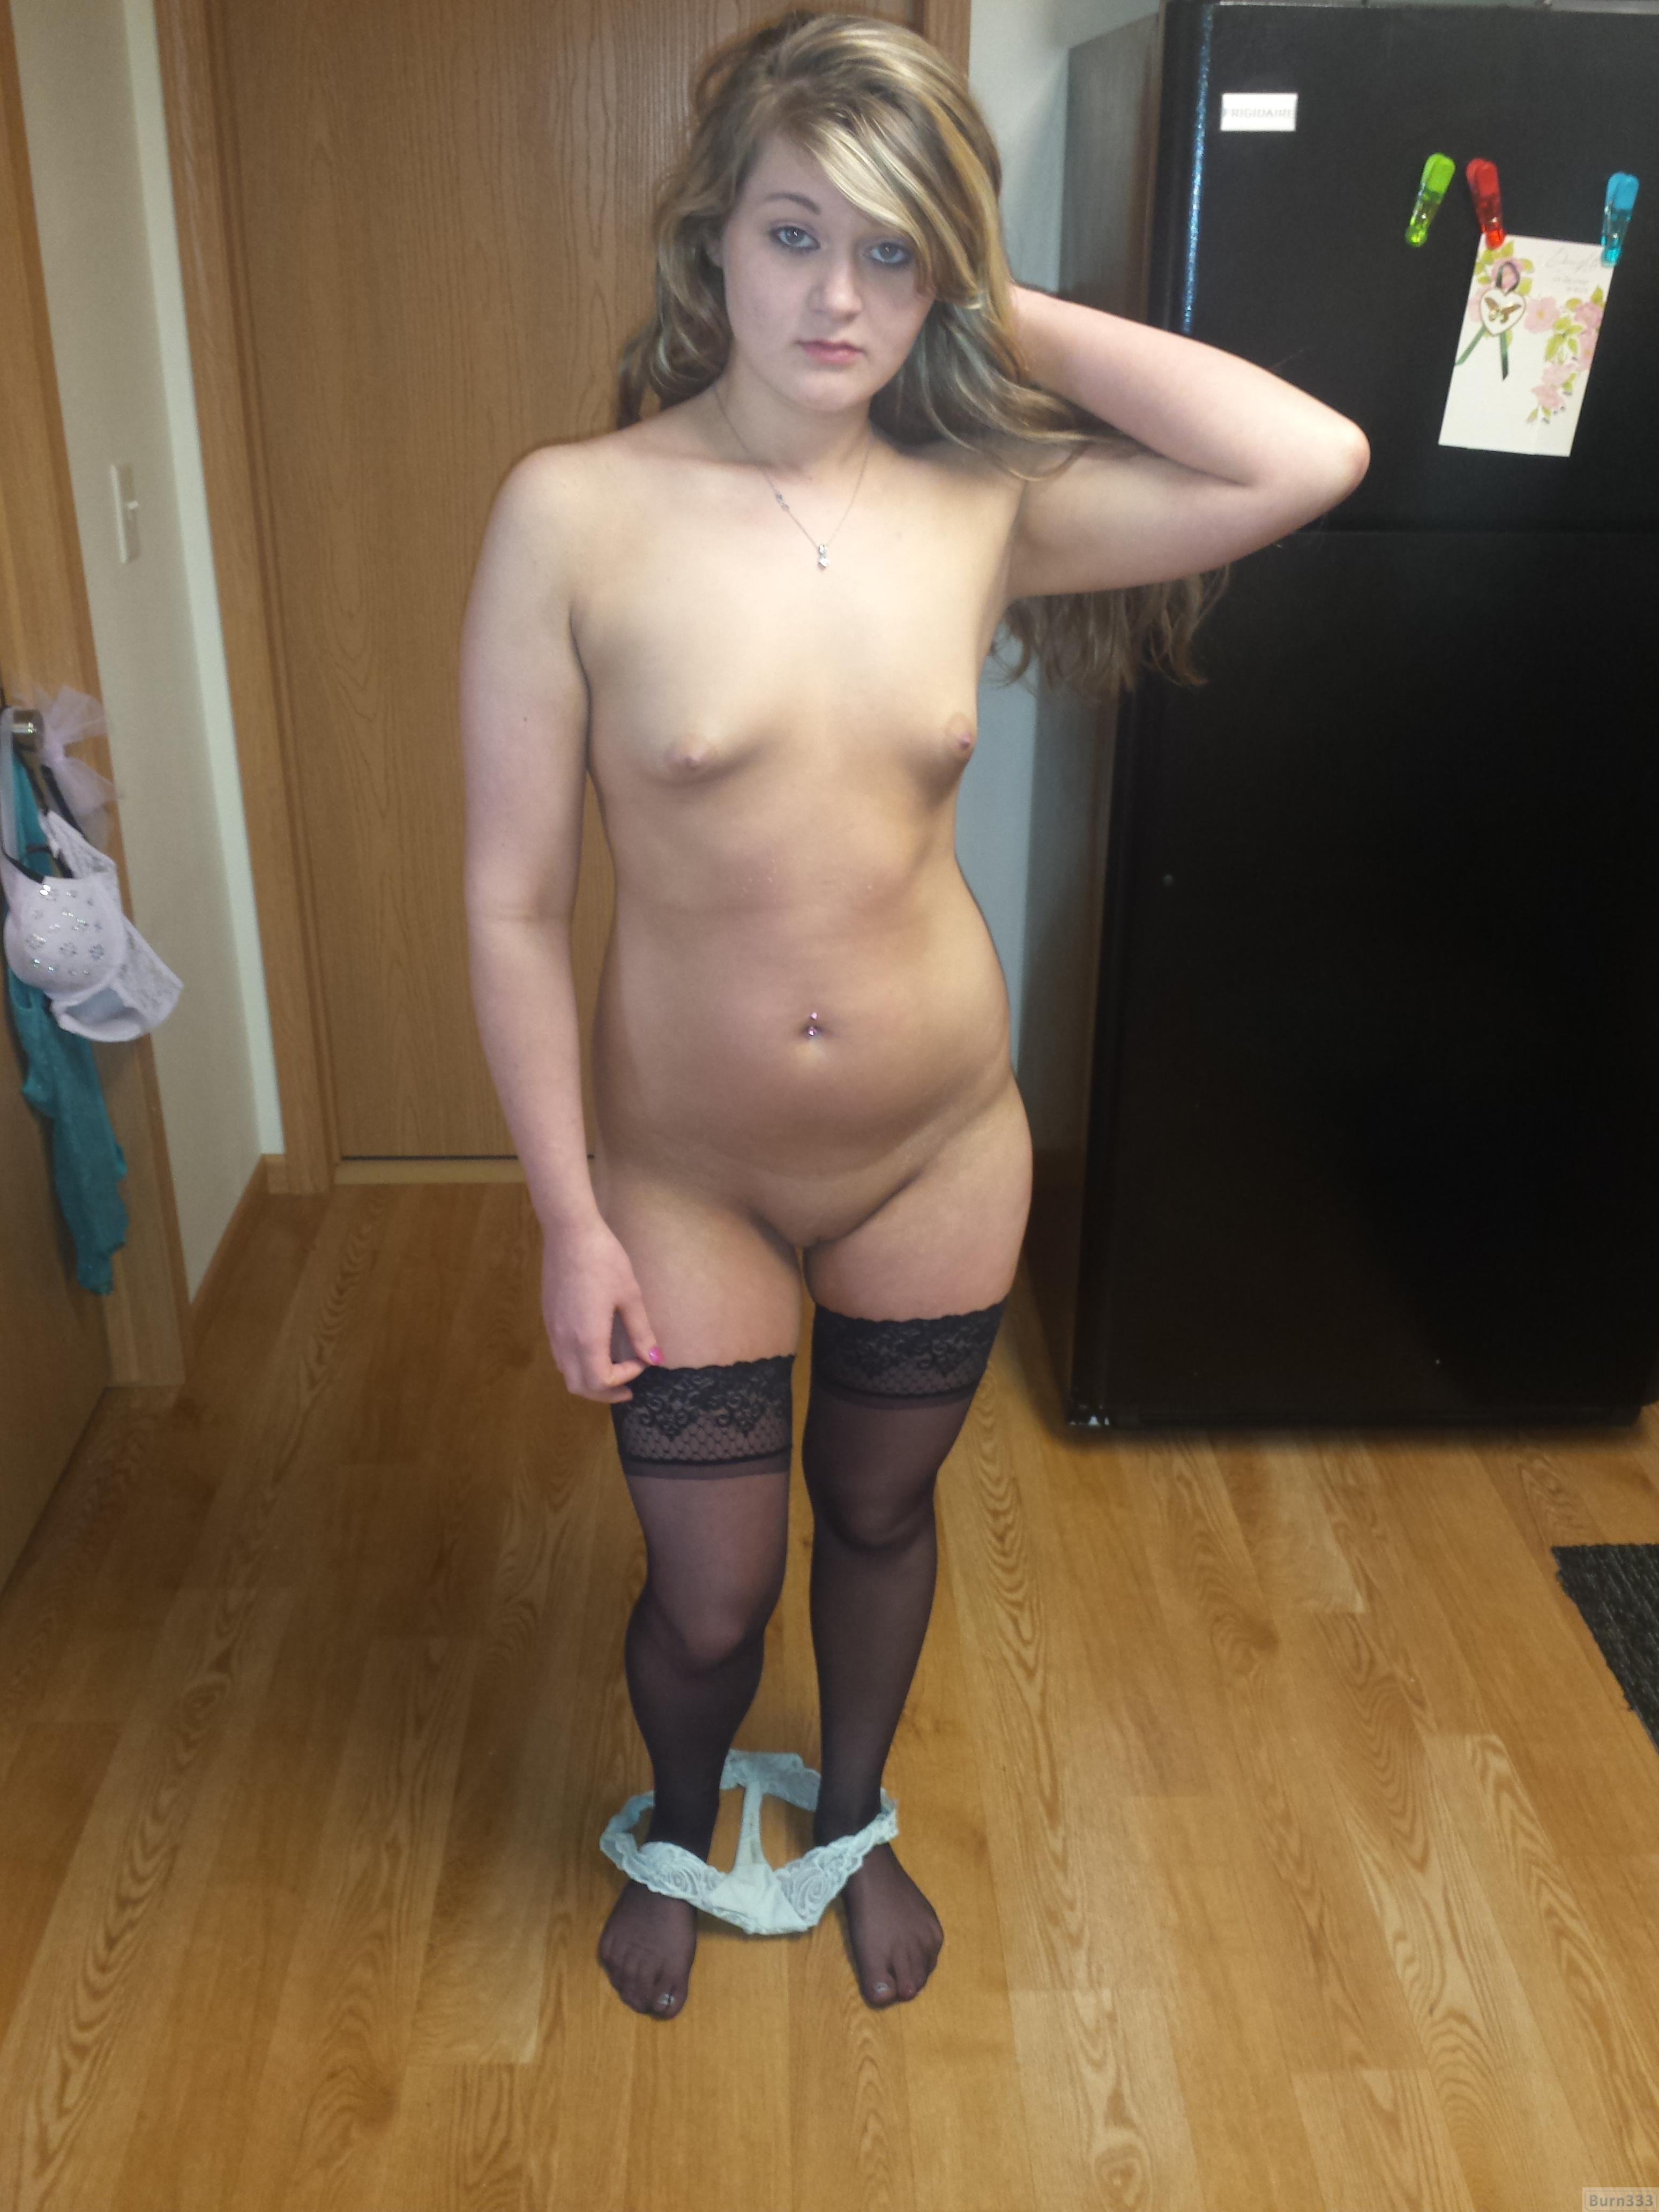 Amazingly! Amateur whittney maravich college nudes accept. The